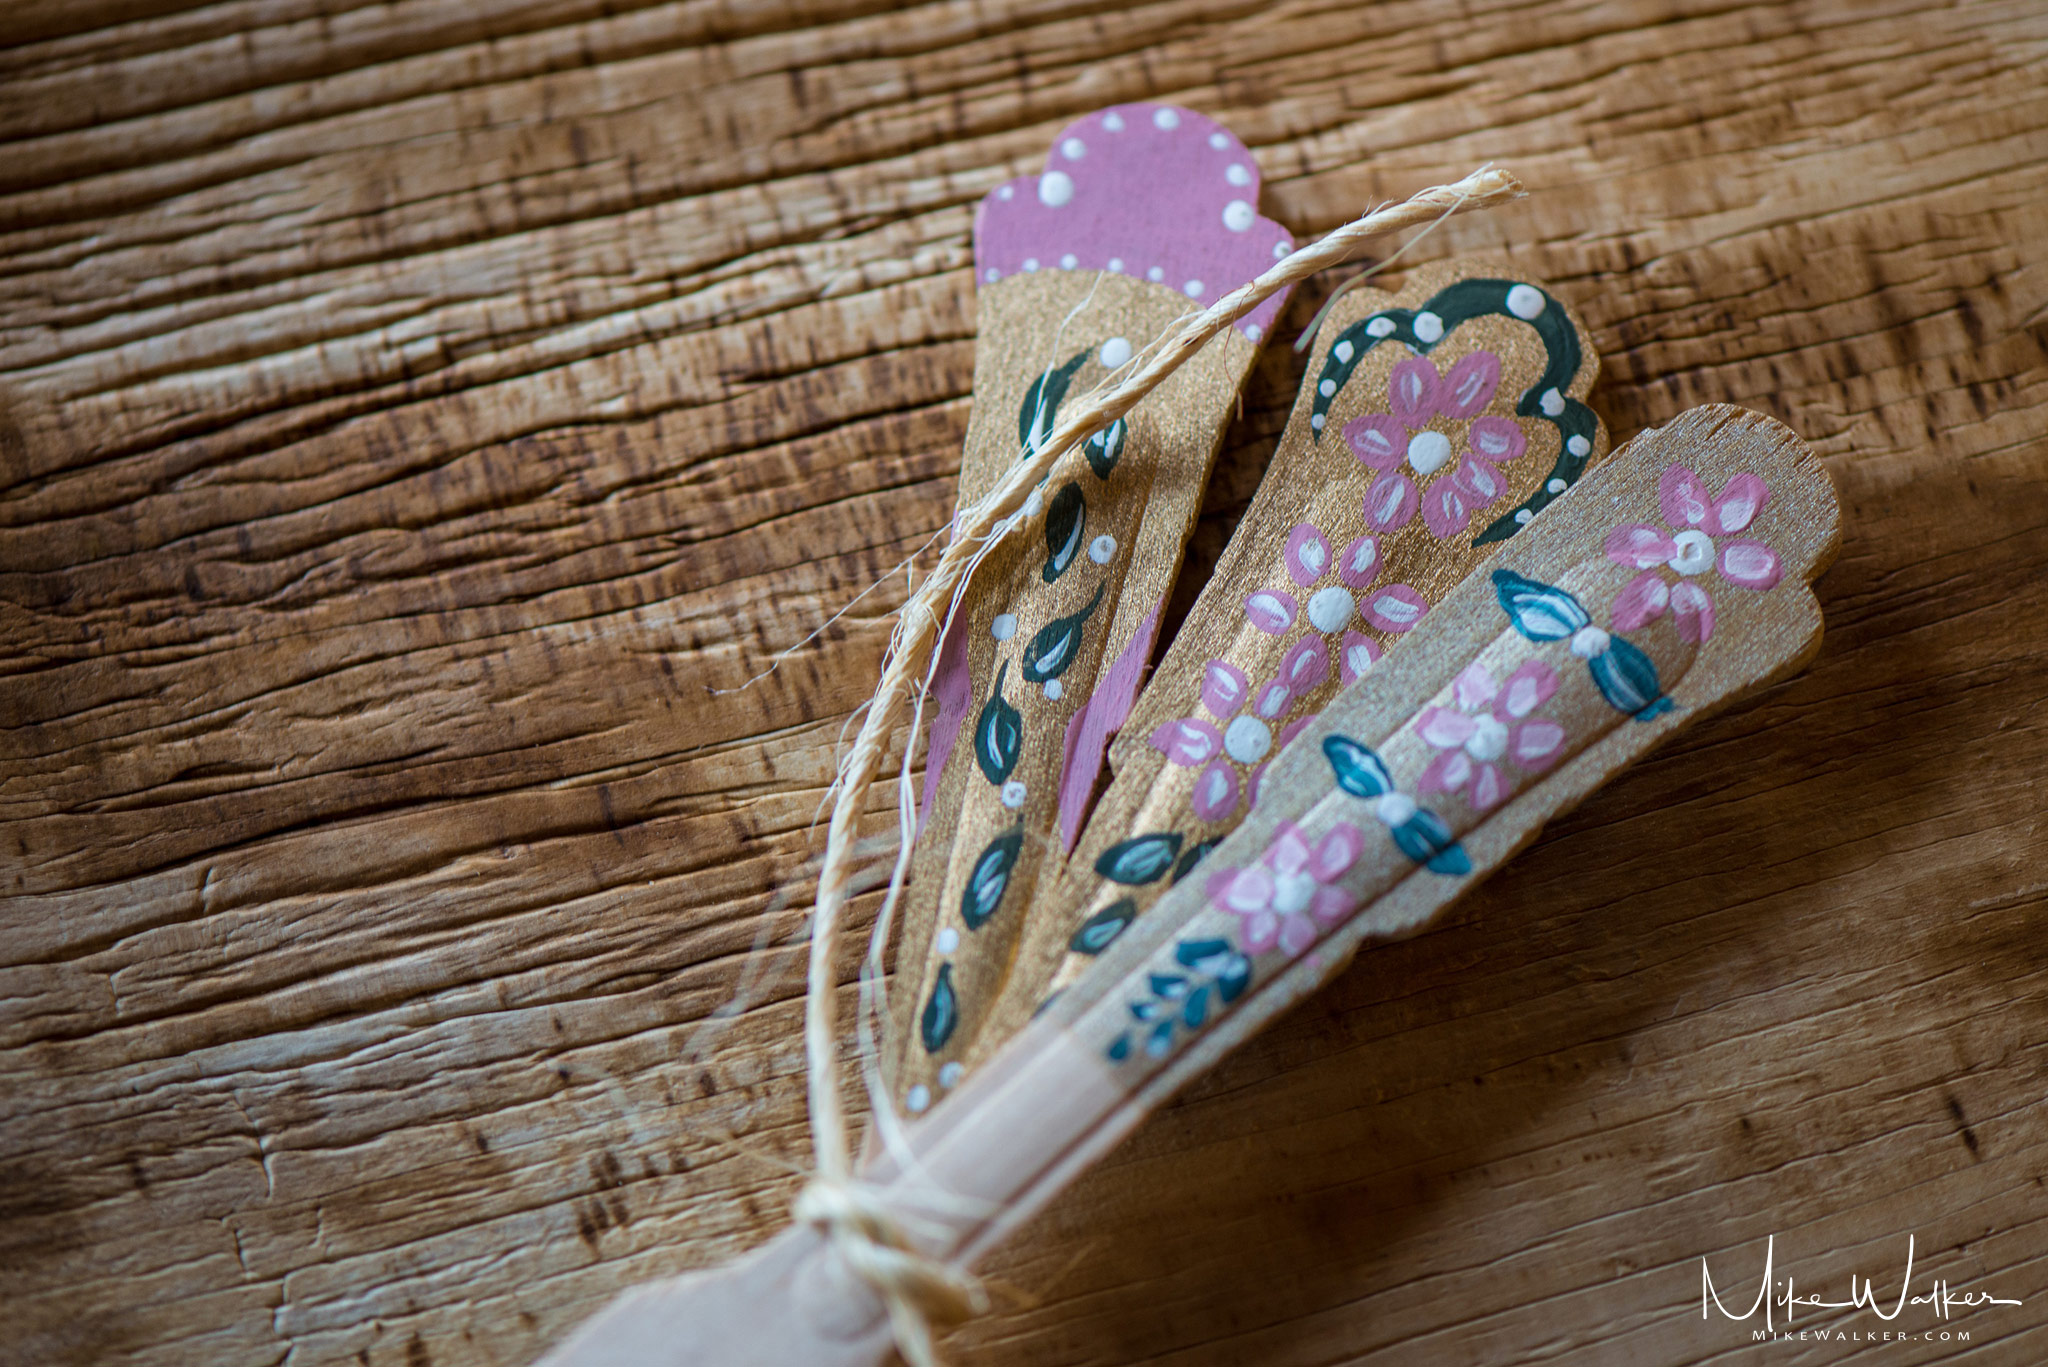 Hand-painted utensils done by the bride for her wedding. Wedding photography by Mike Walker.